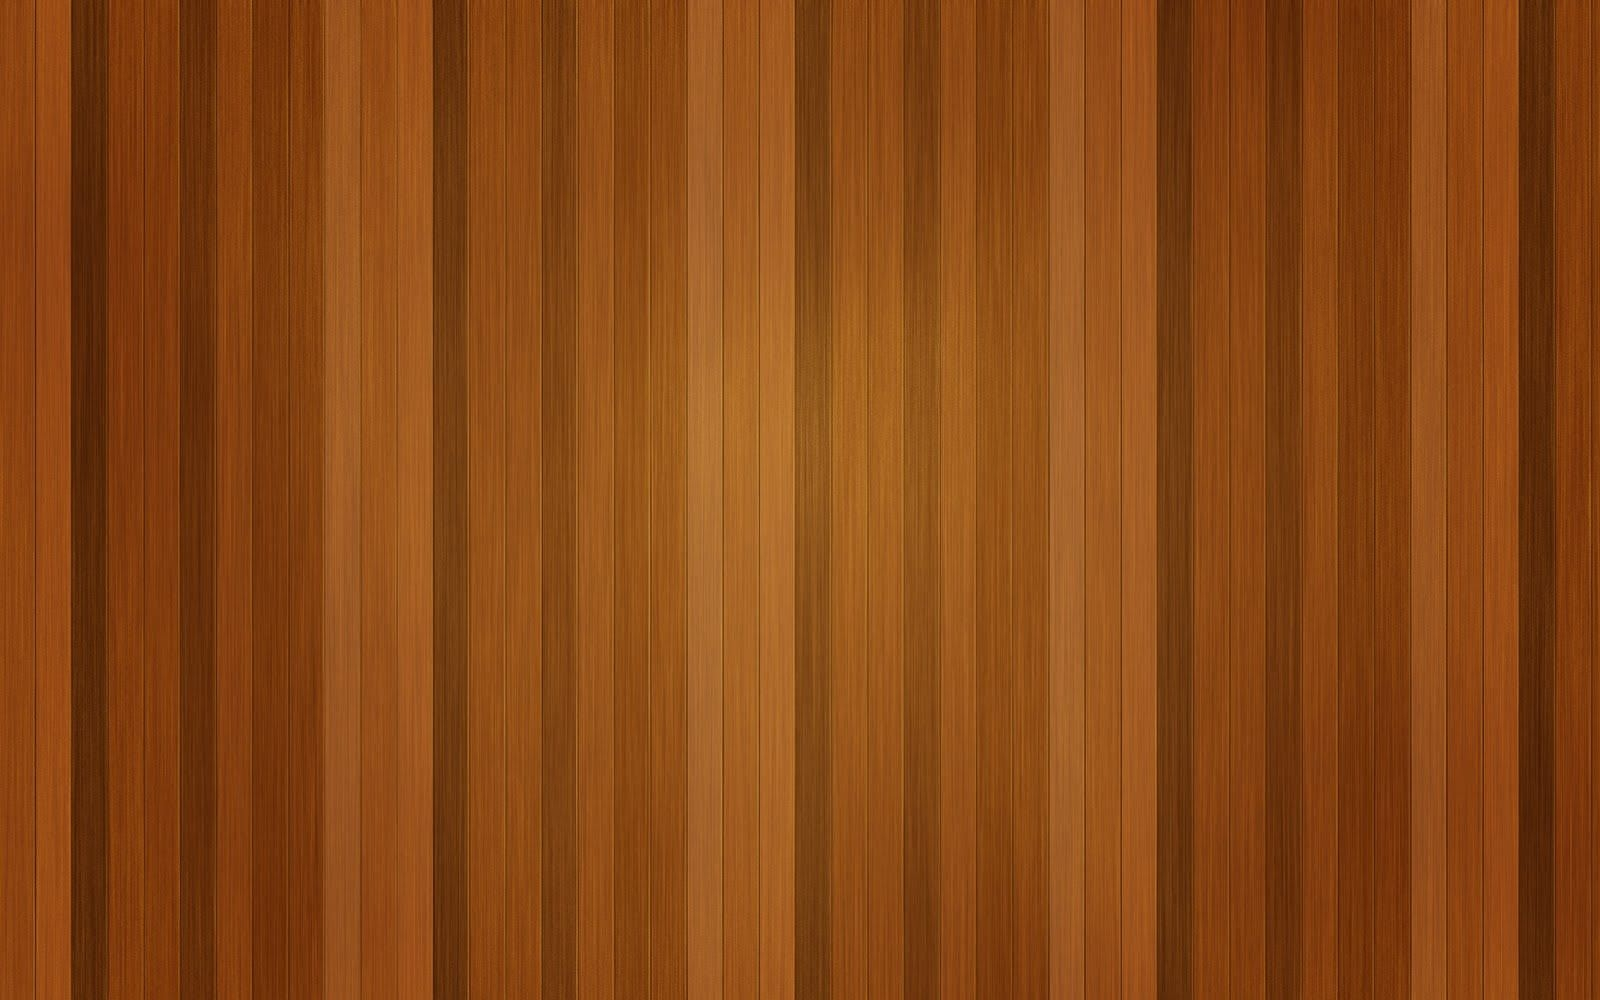 Wood Wall Desktop Background